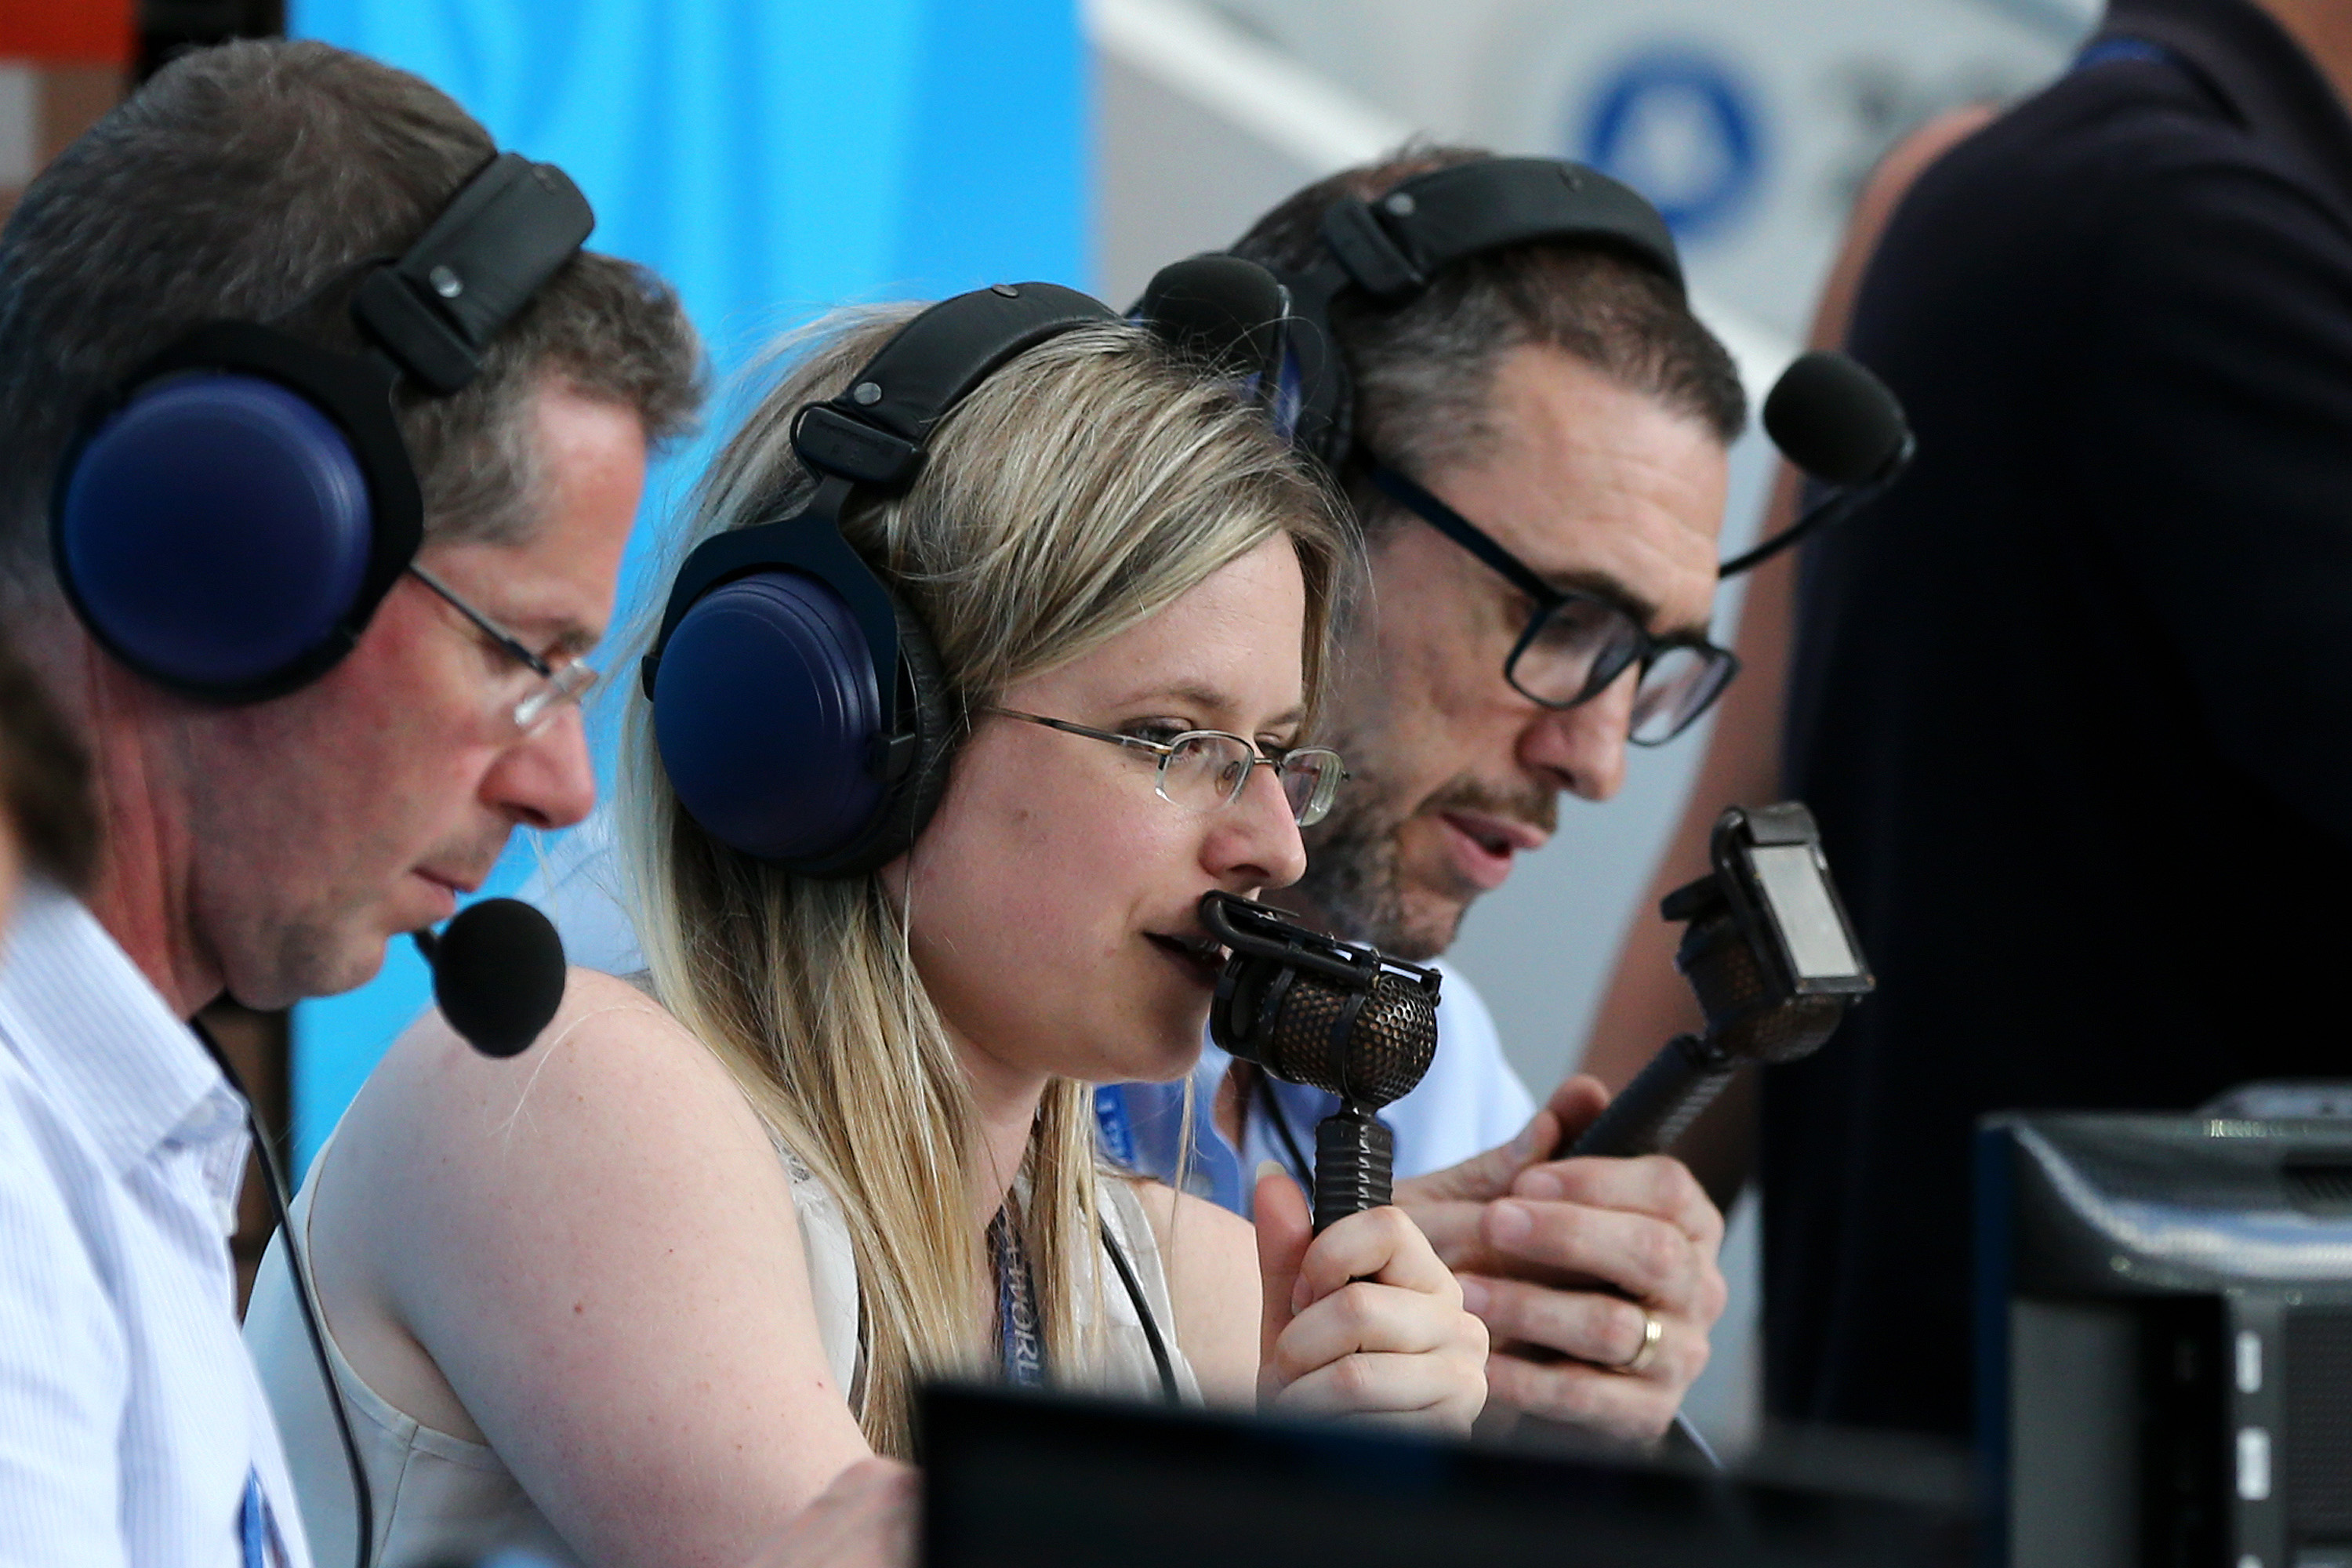 Vicki Sparks commentates for BBC during the 2018 FIFA World Cup Russia group B match between Portugal and Morocco at Luzhniki Stadium on June 20, 2018 in Moscow, Russia.